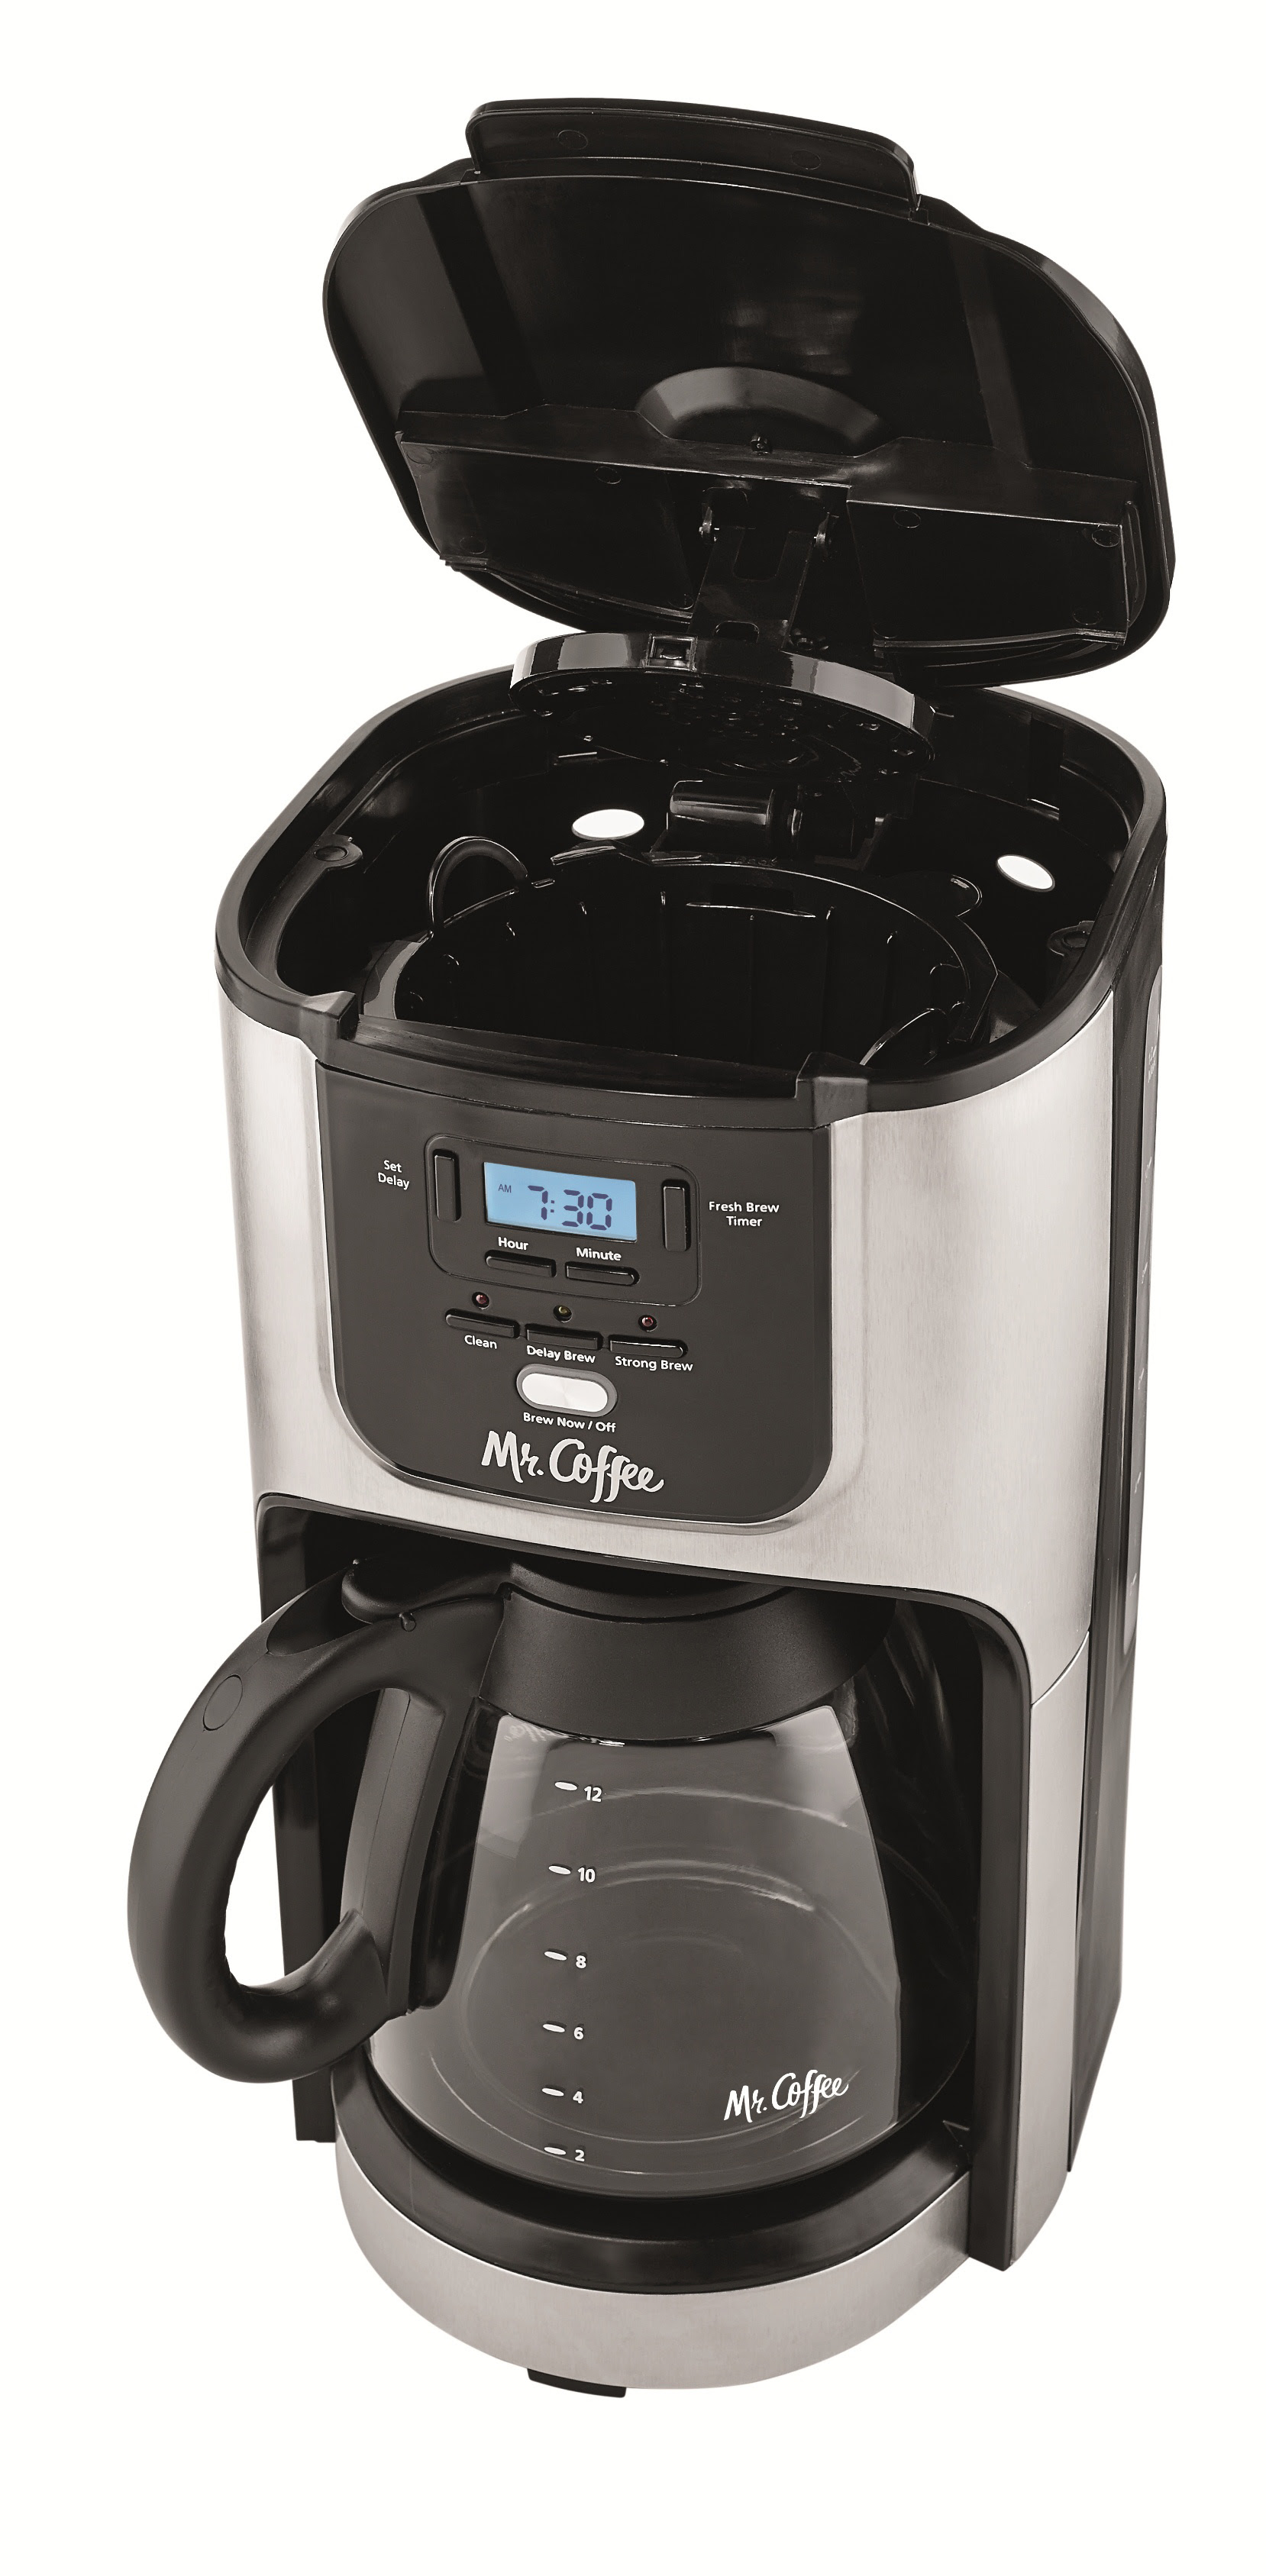 Mr. Coffee 12-Cup Programmable Coffee Maker - BVMC-JPX37